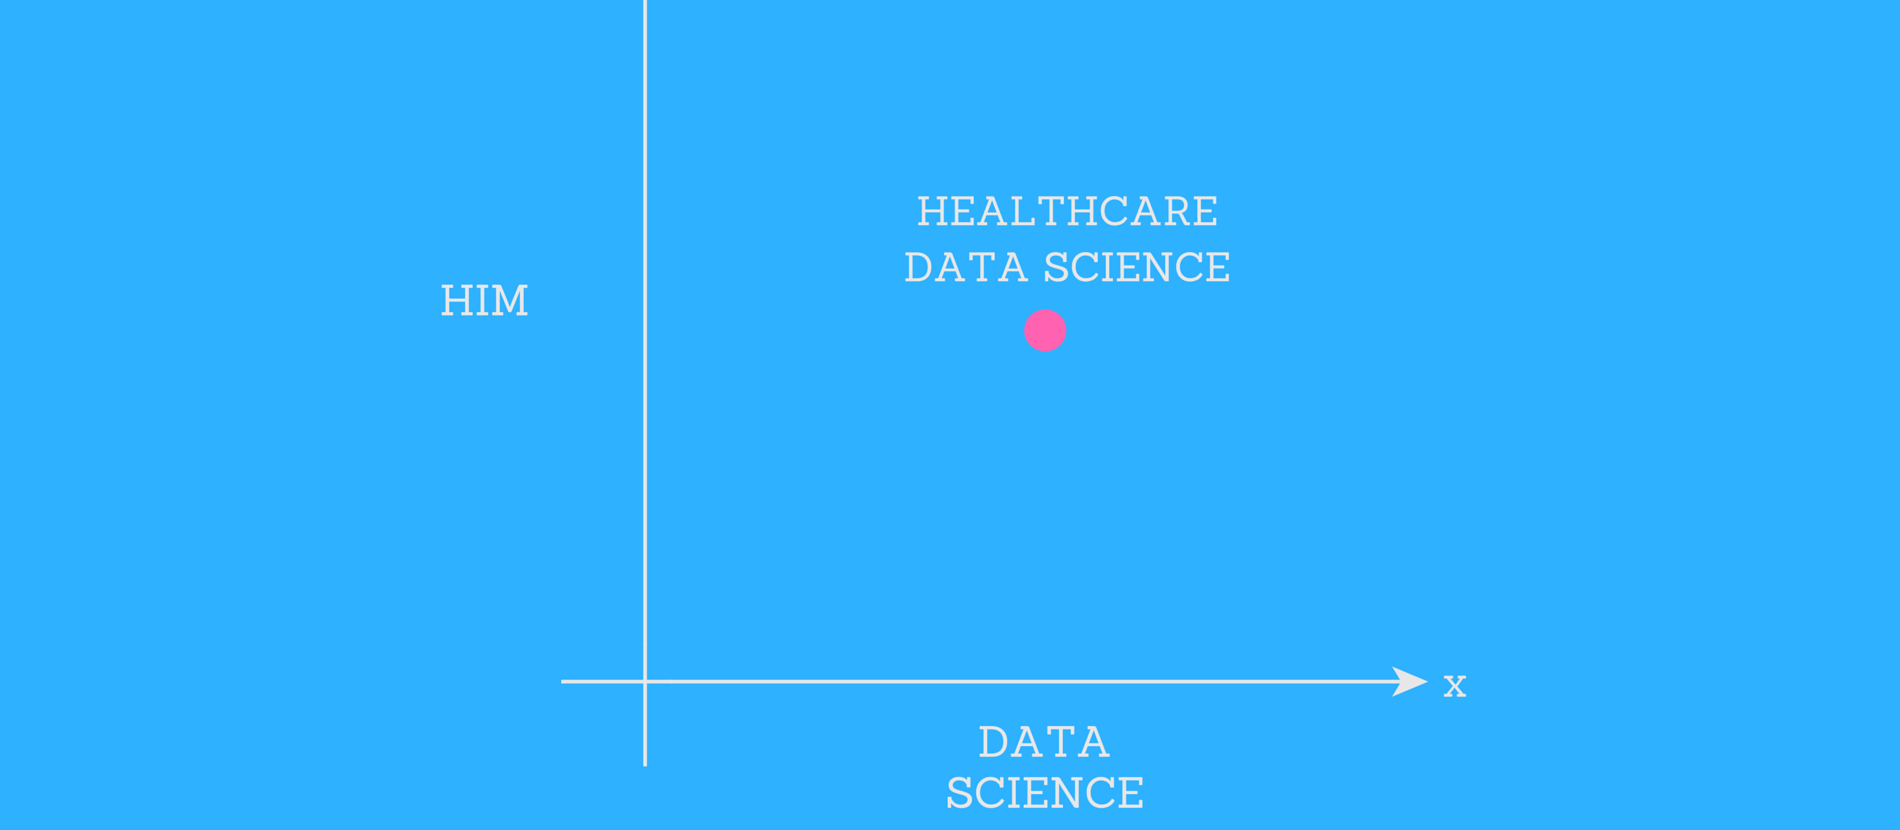 Healthcare Data Scientists